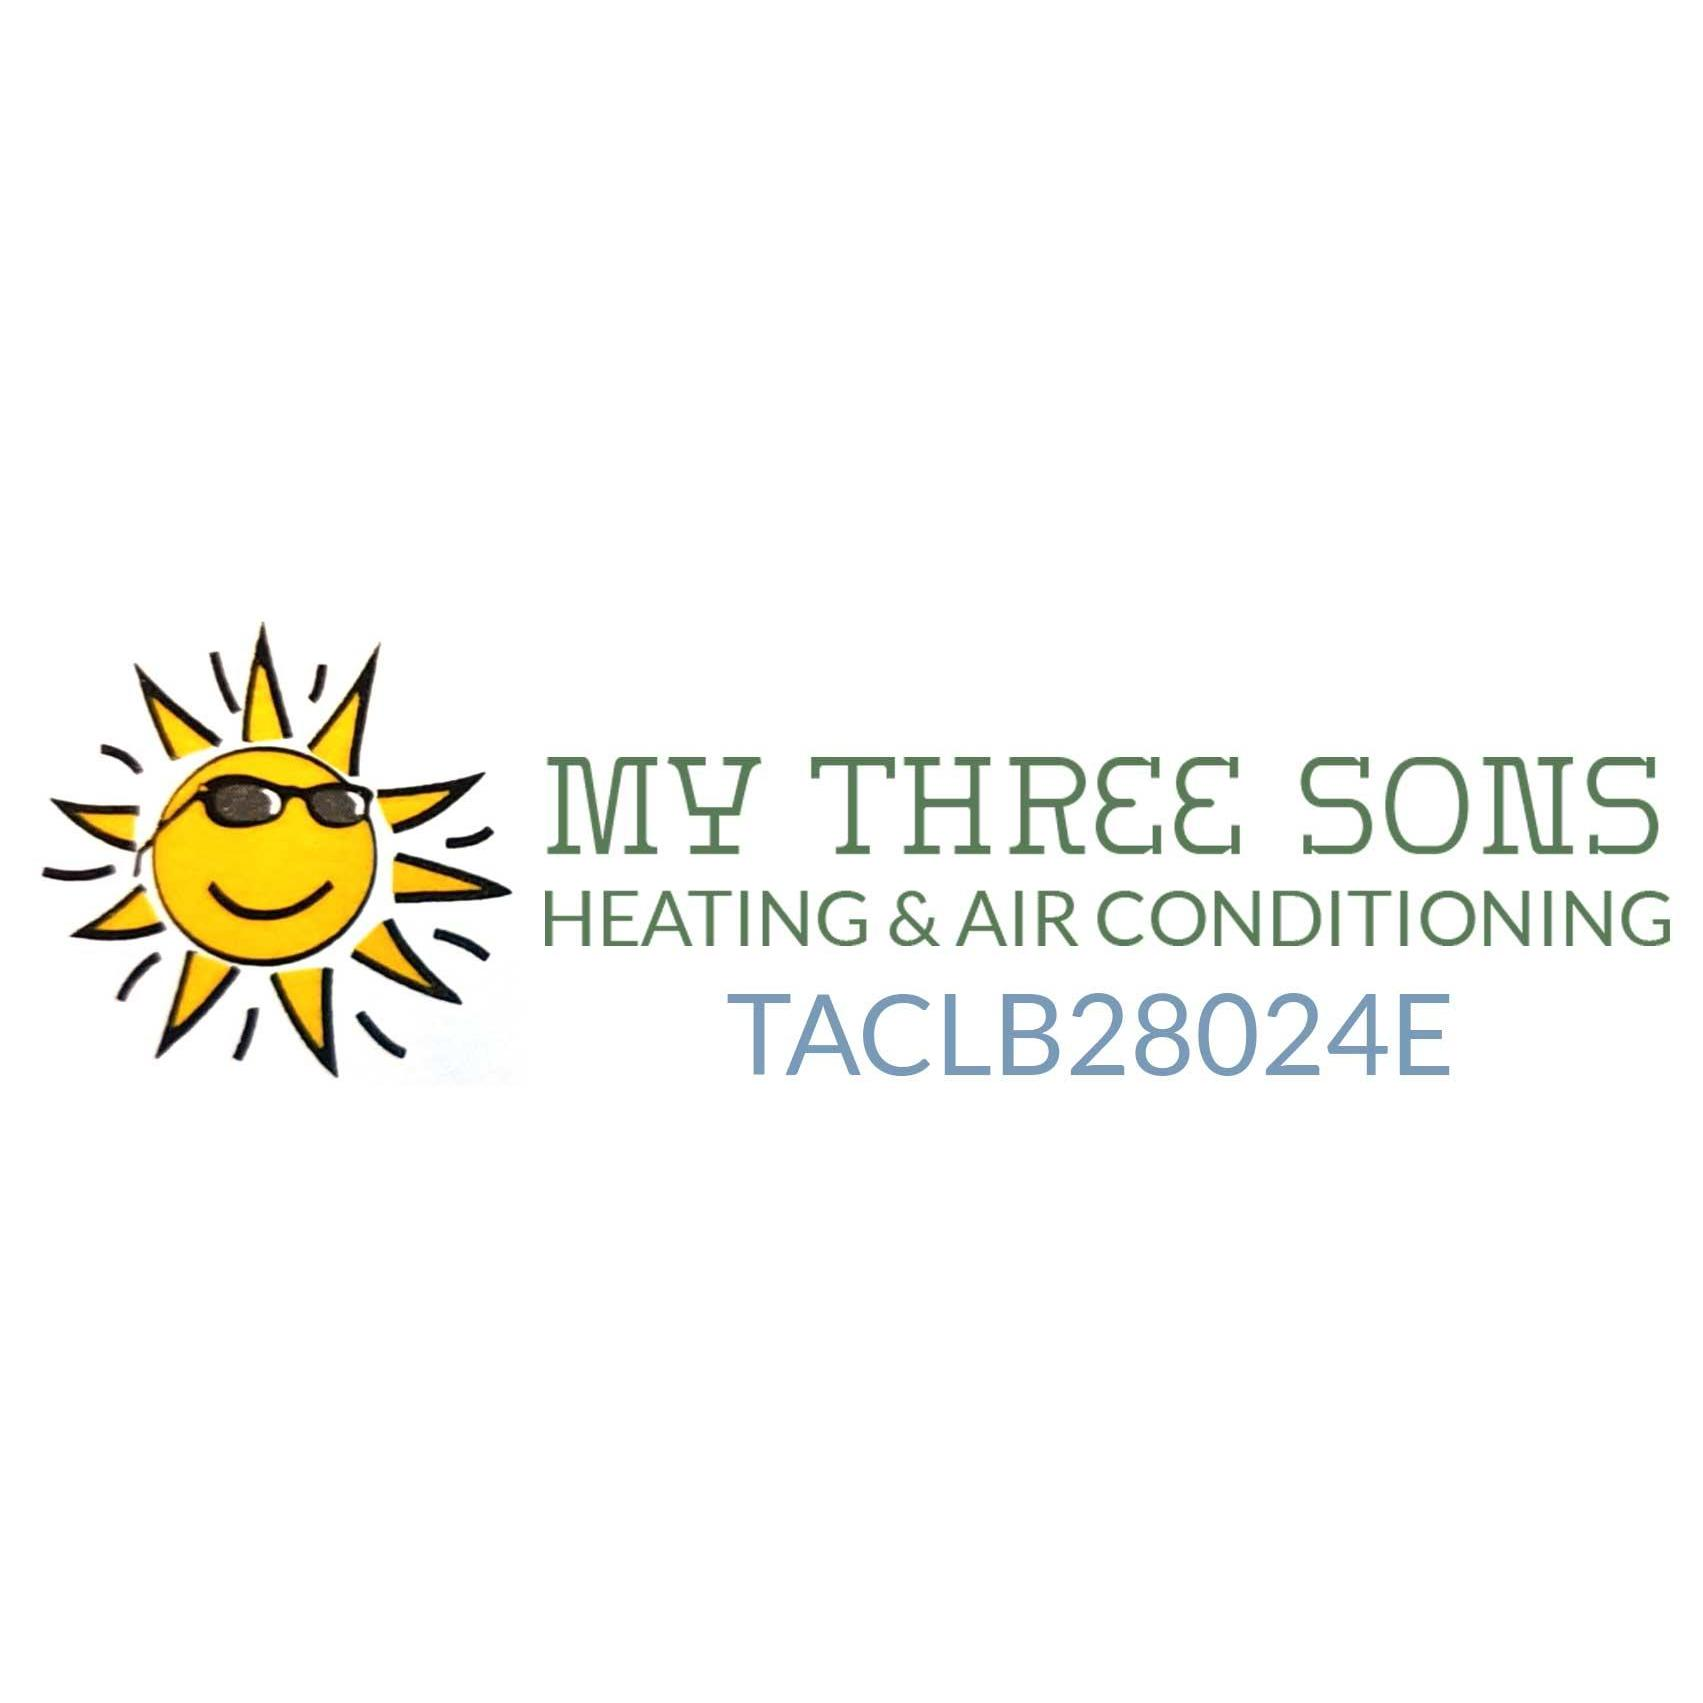 My Three Sons Heating & Air Conditioning